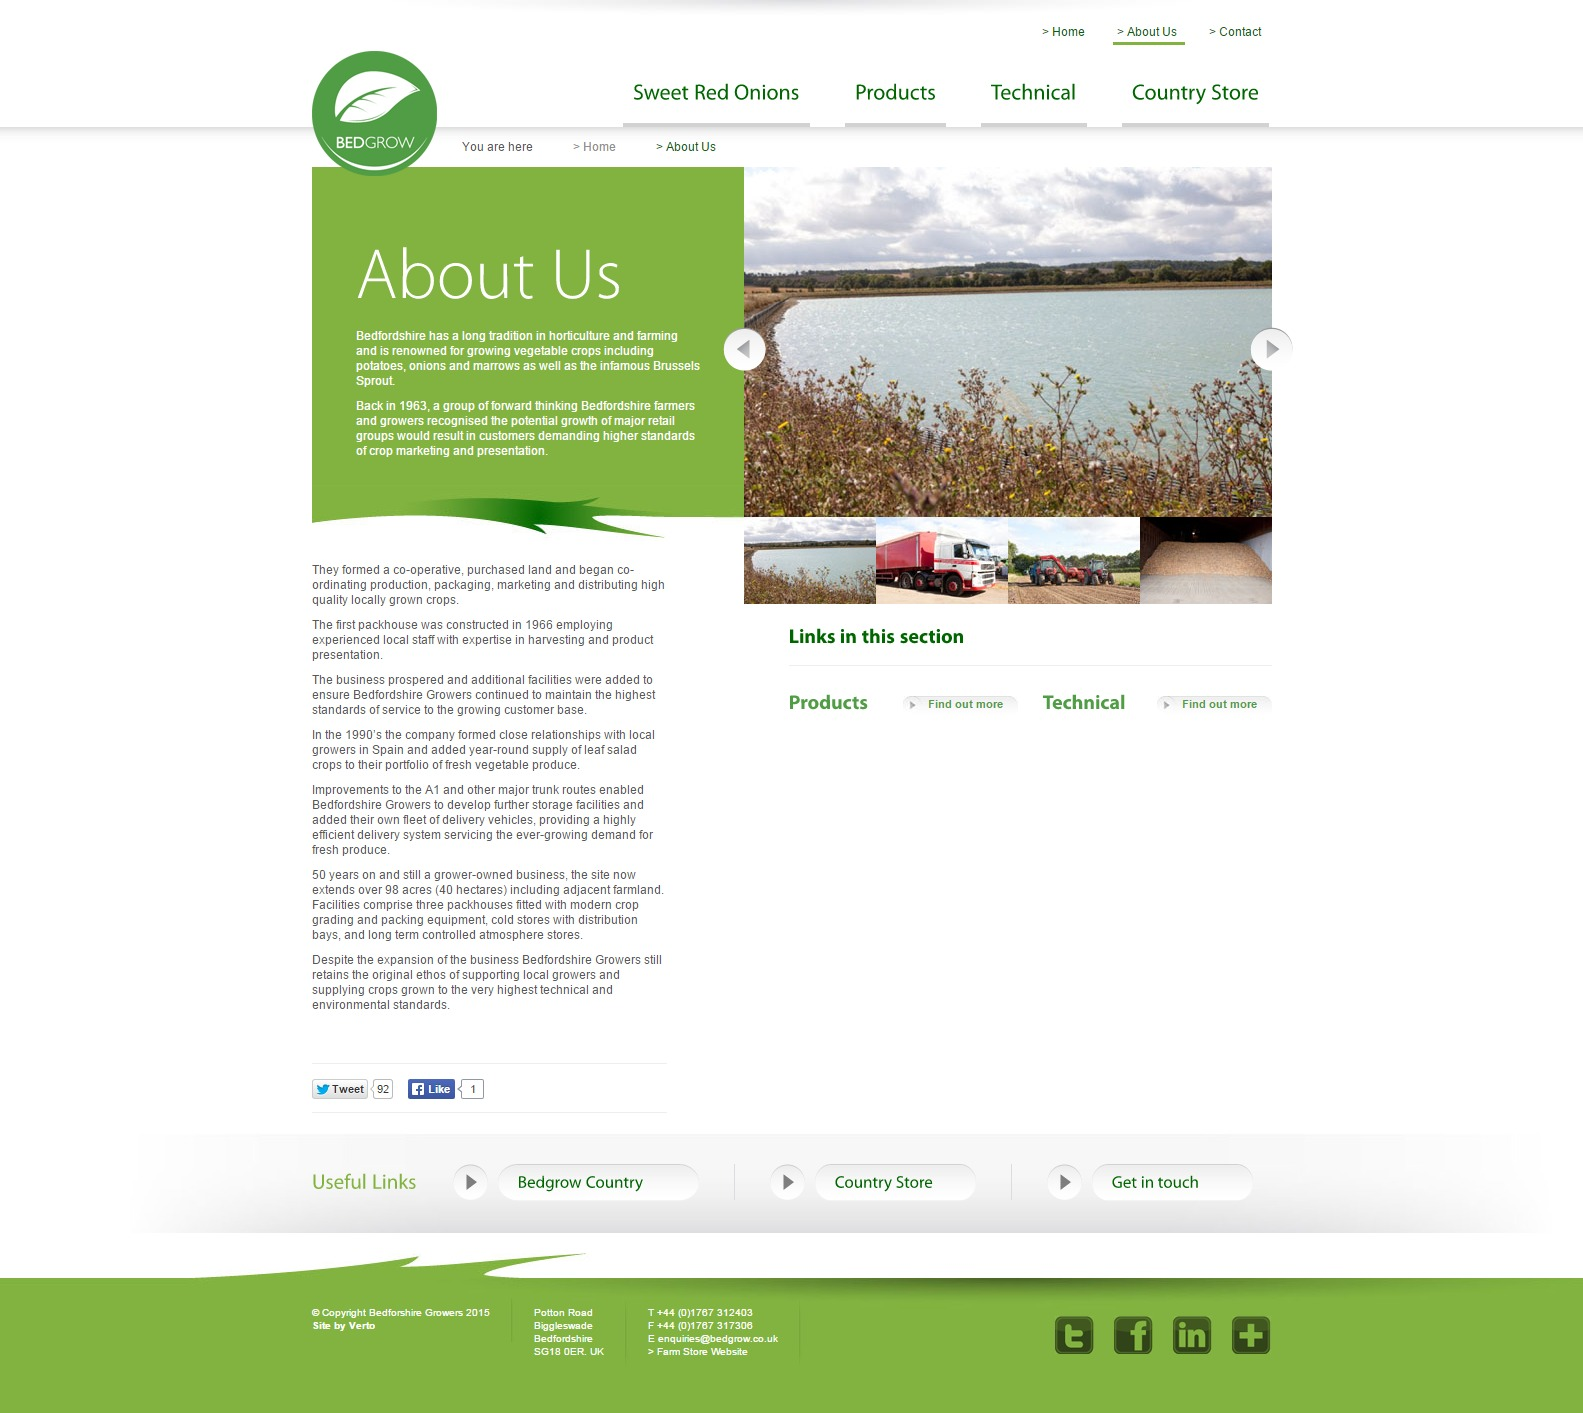 Bedfordshire Growers   About Us